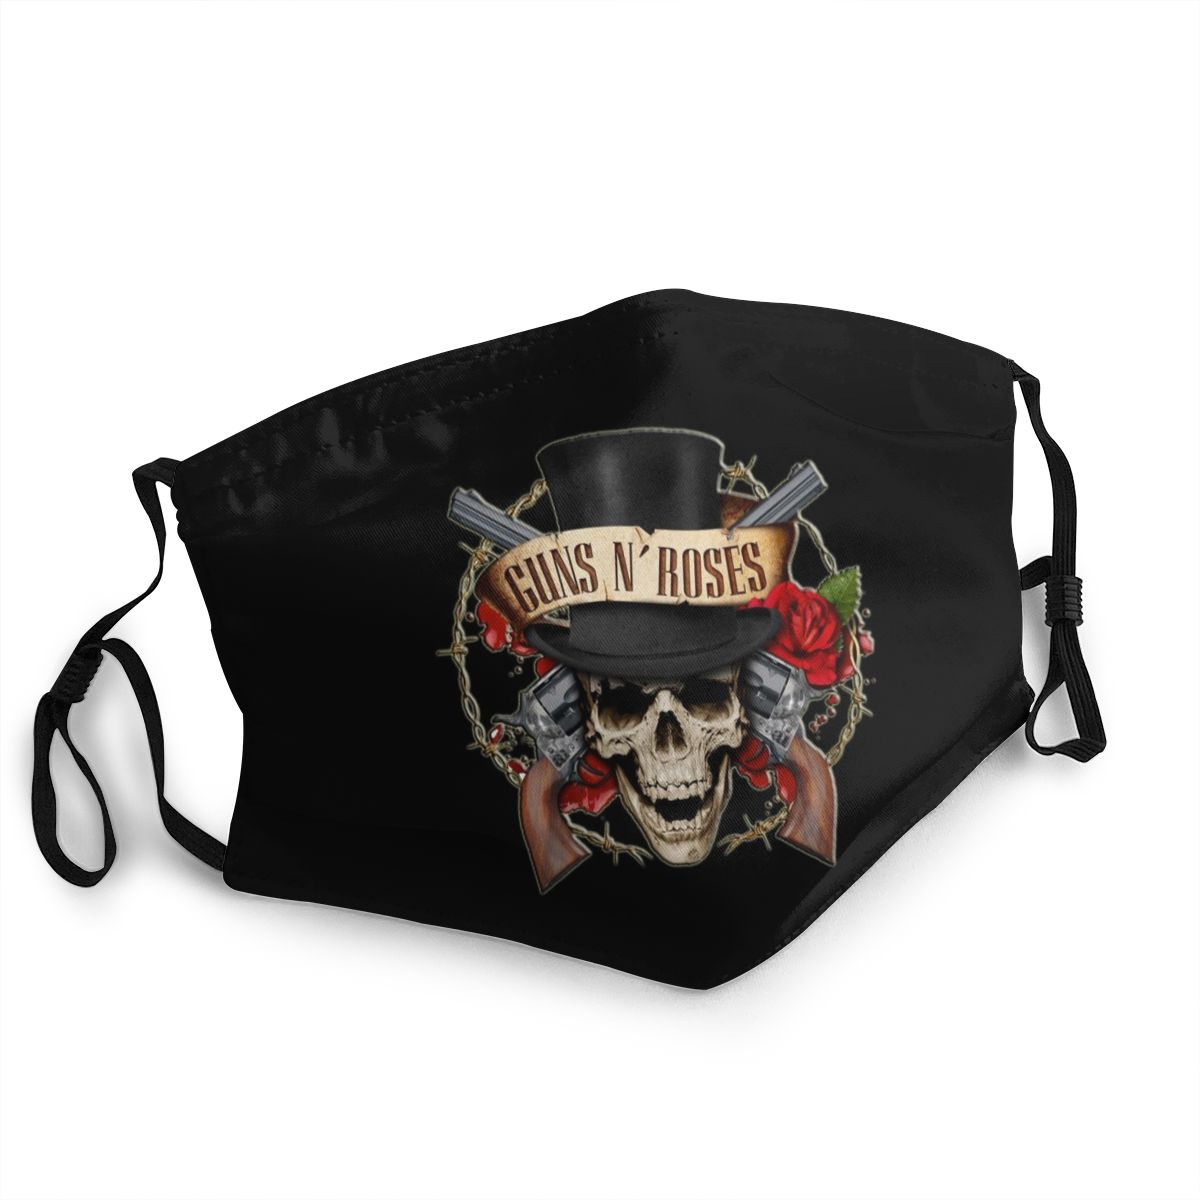 2020 New Guns N Roses Pm2.5 Filter Dust Mouth Mask Hip Hop Women/men Filter Mouth Foam Mask Guns Slash Ladies/mens Mask